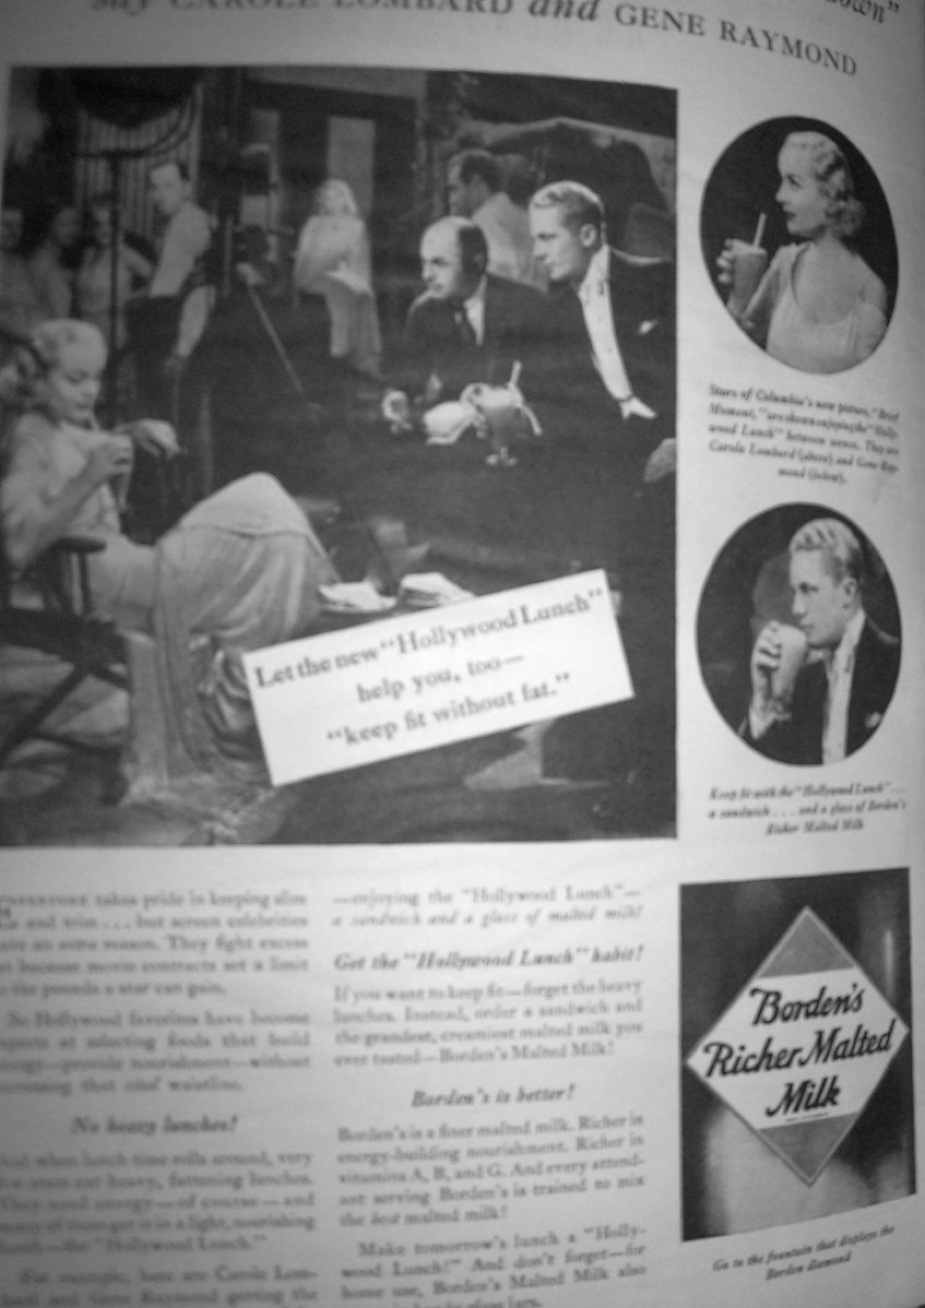 carole lombard shadoplay sept 1933 borden ad large